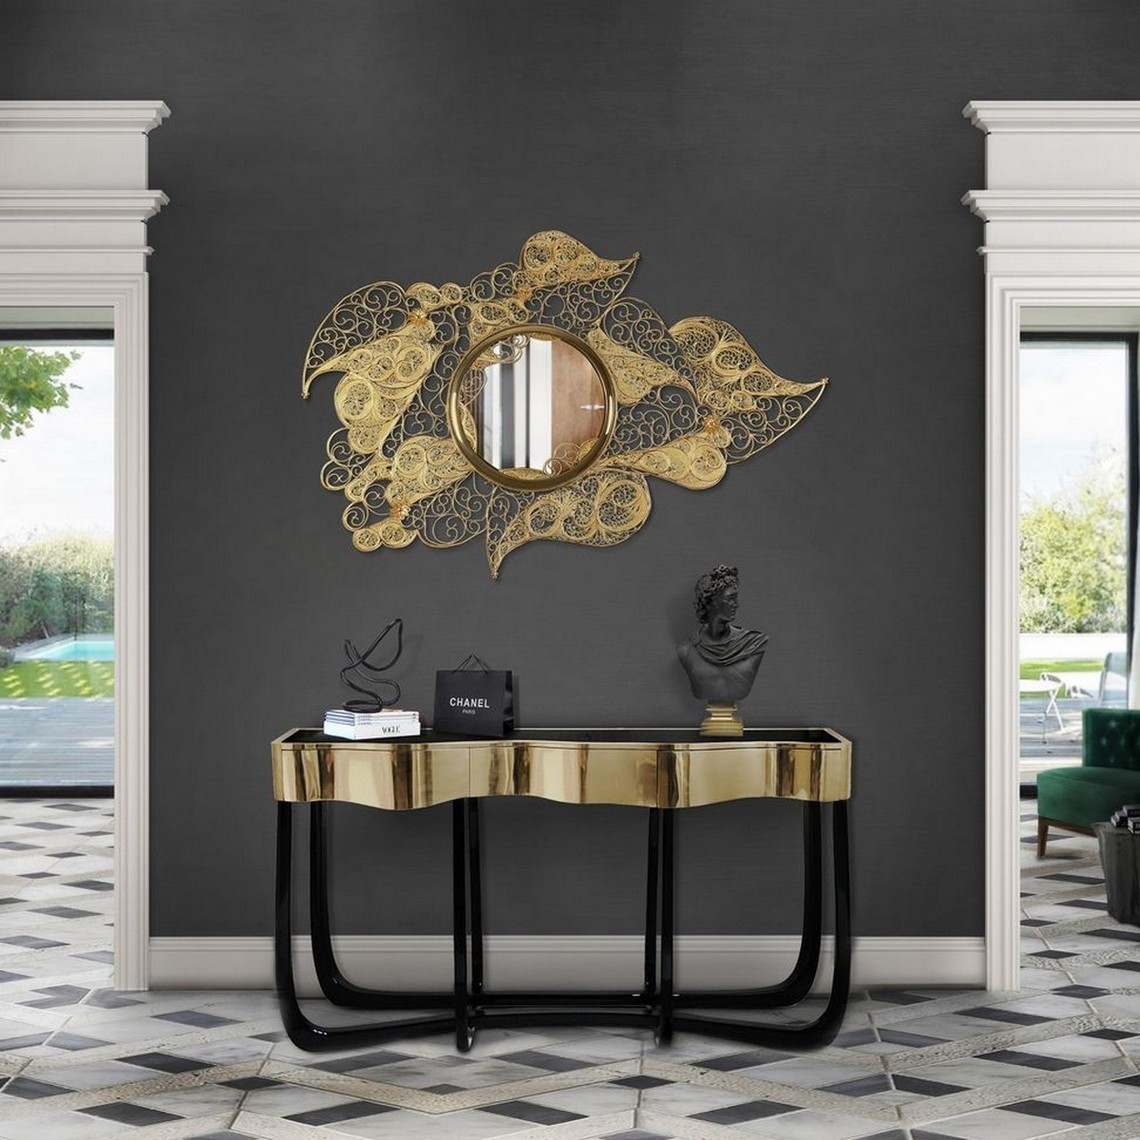 Top Luxury Console Tables For a Bold Entryway luxury console tables Top Luxury Console Tables For a Bold Entryway sinuous